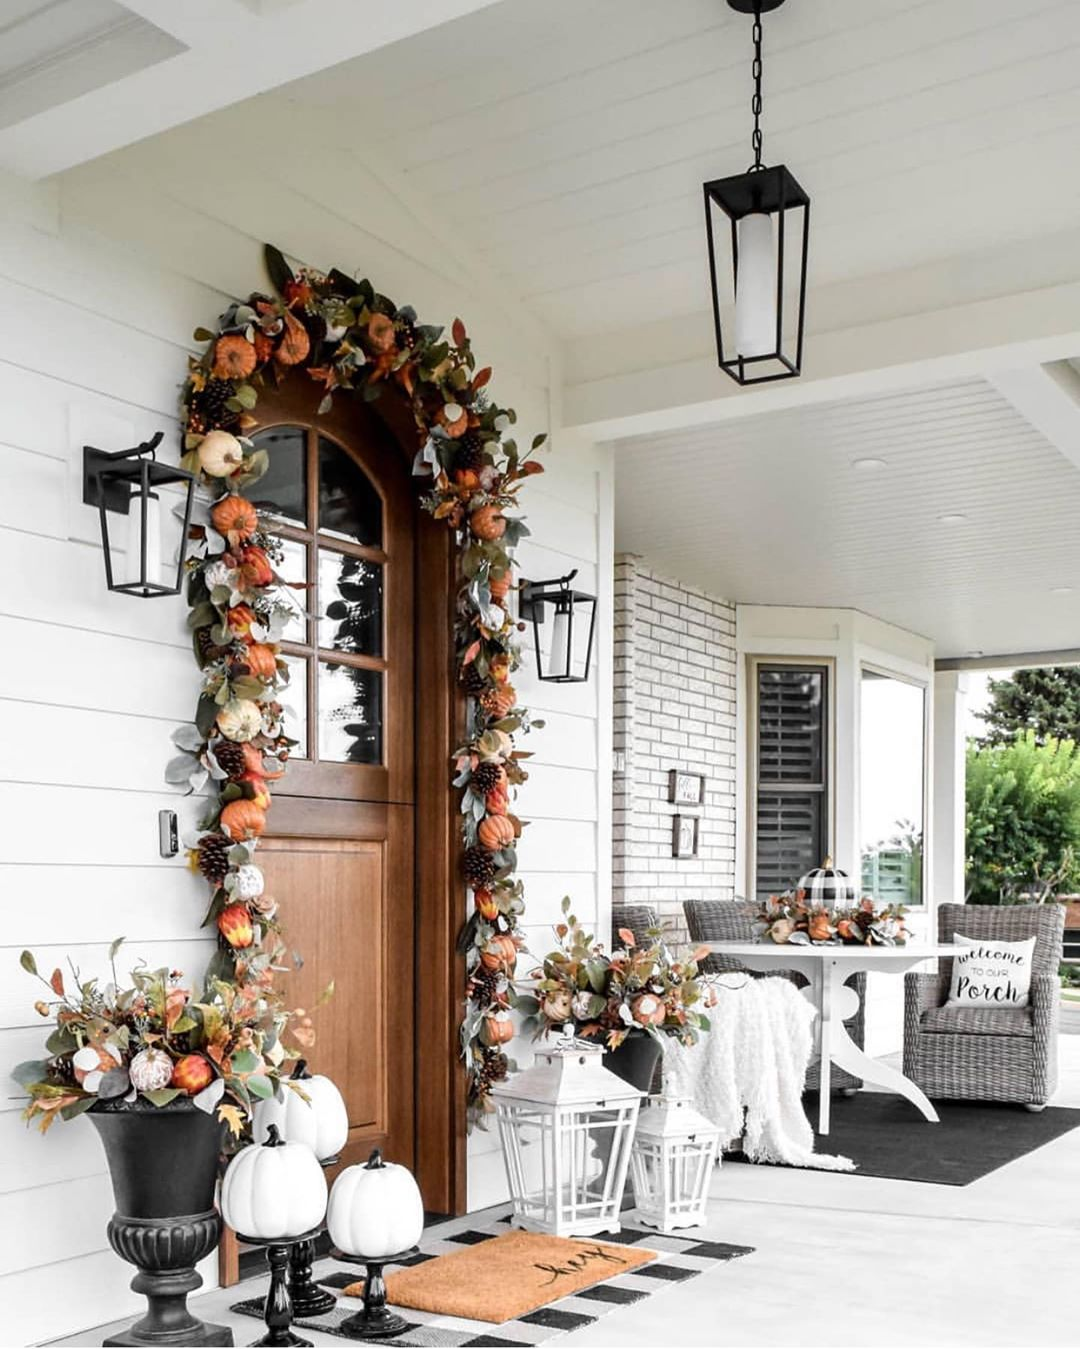 Using Fall Porch Decor to Create an Inviting Entry